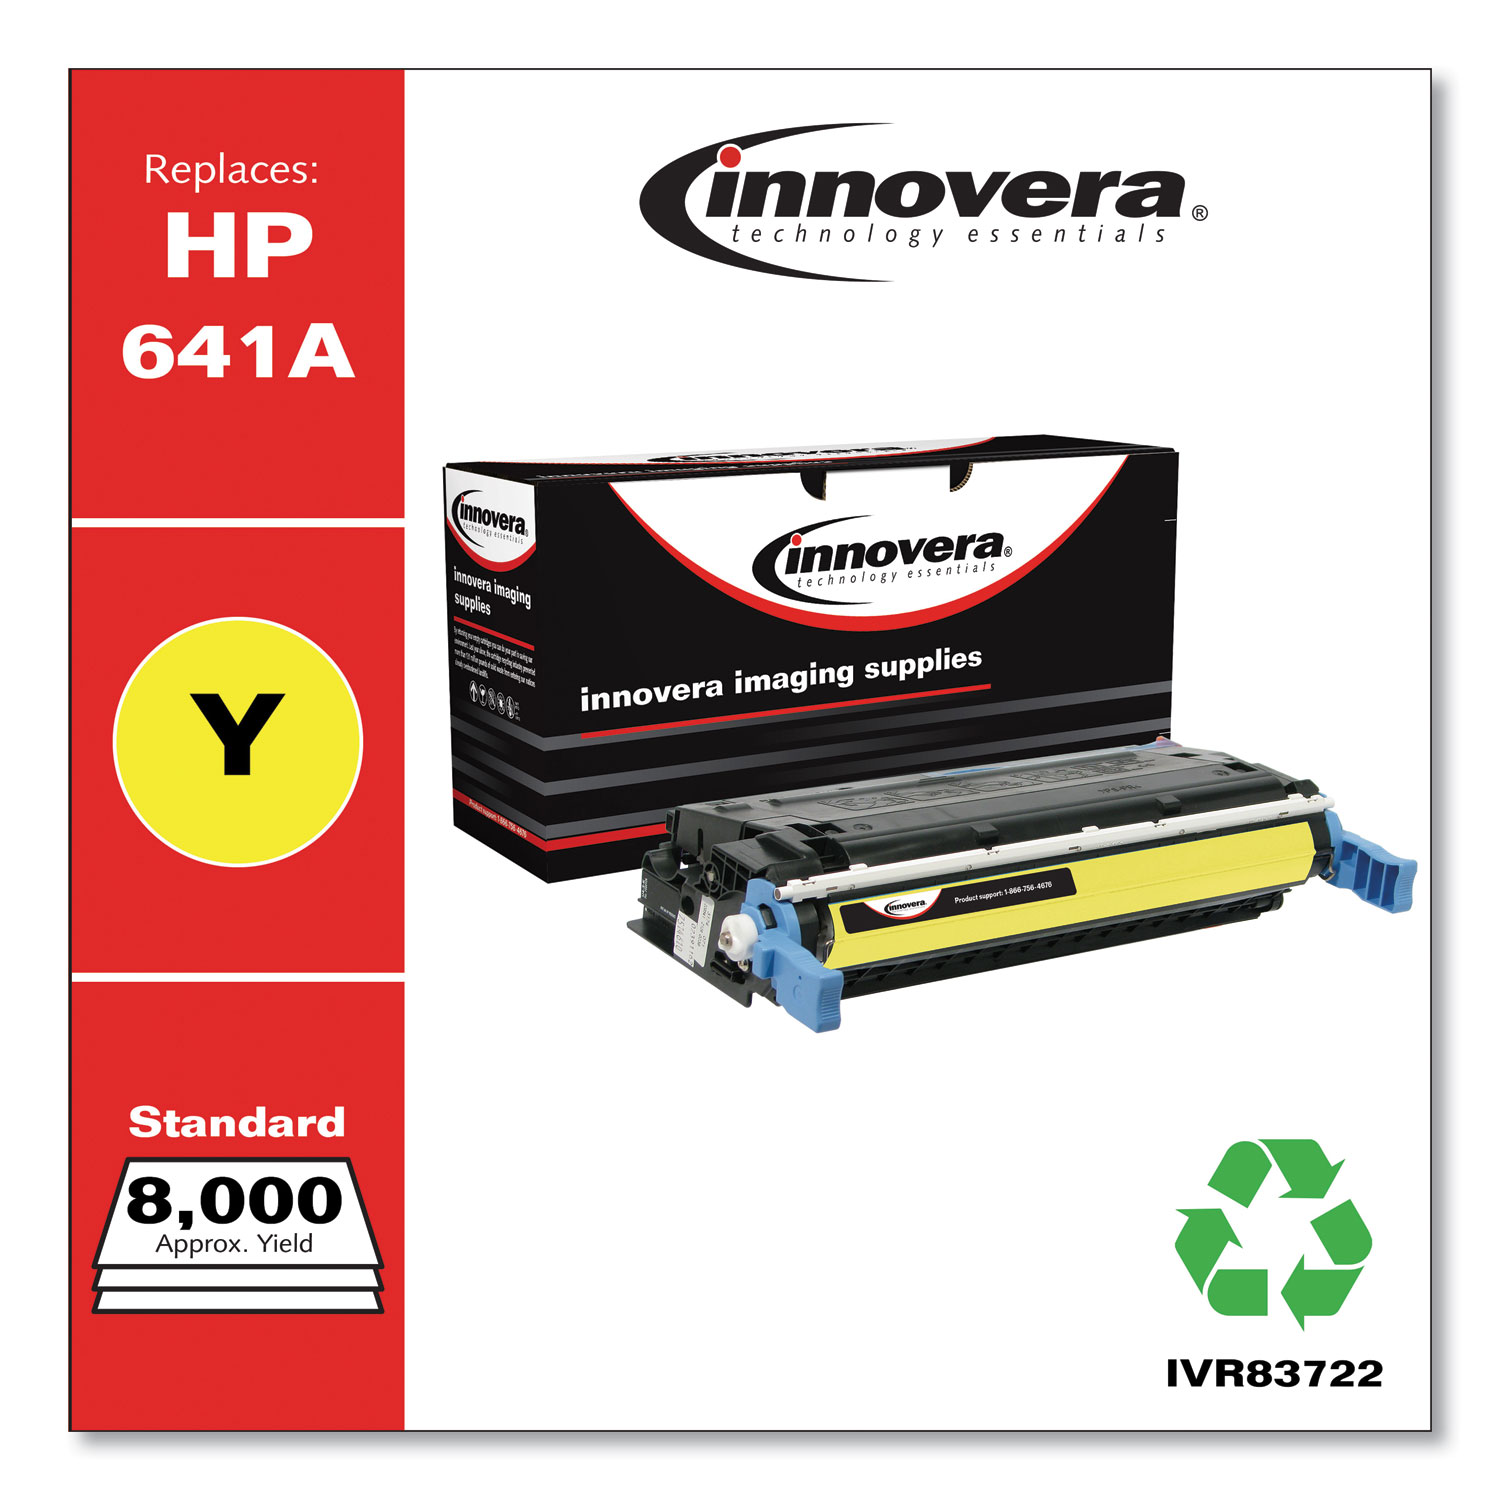 Remanufactured Yellow Toner, Replacement for HP 641A (C9722A), 8,000 Page-Yield IVR83722